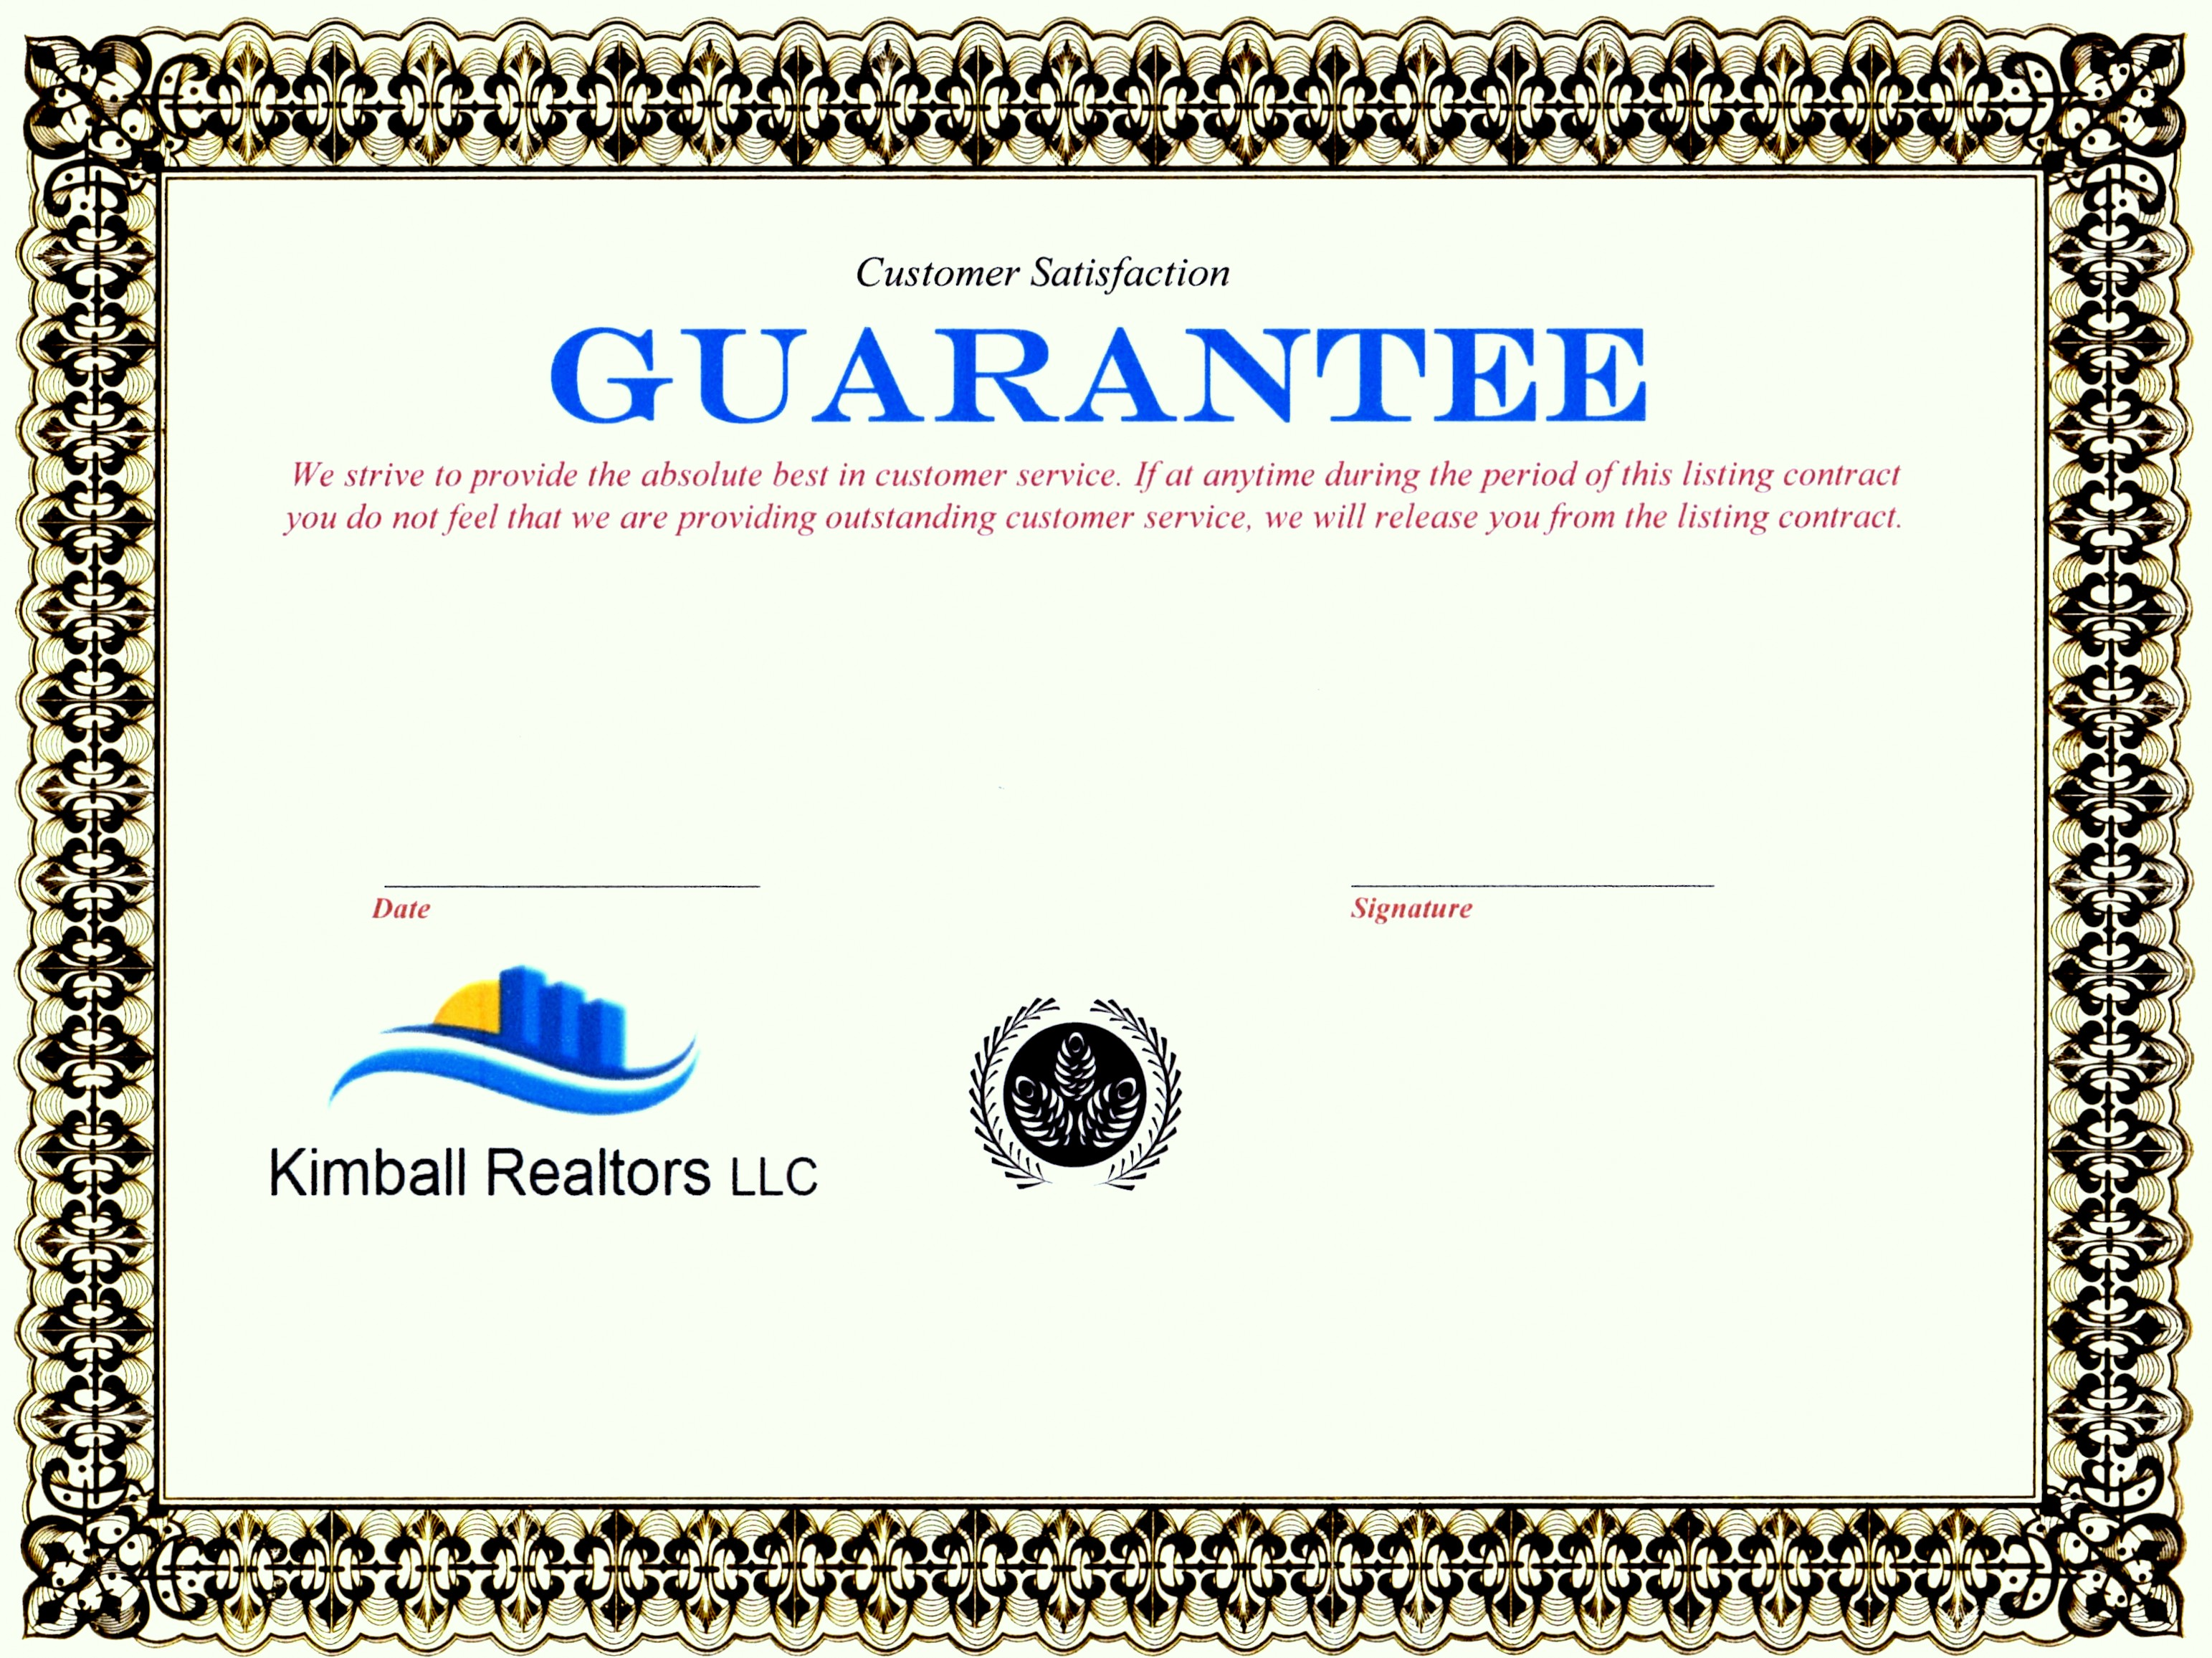 Read Our Listing Guarantee